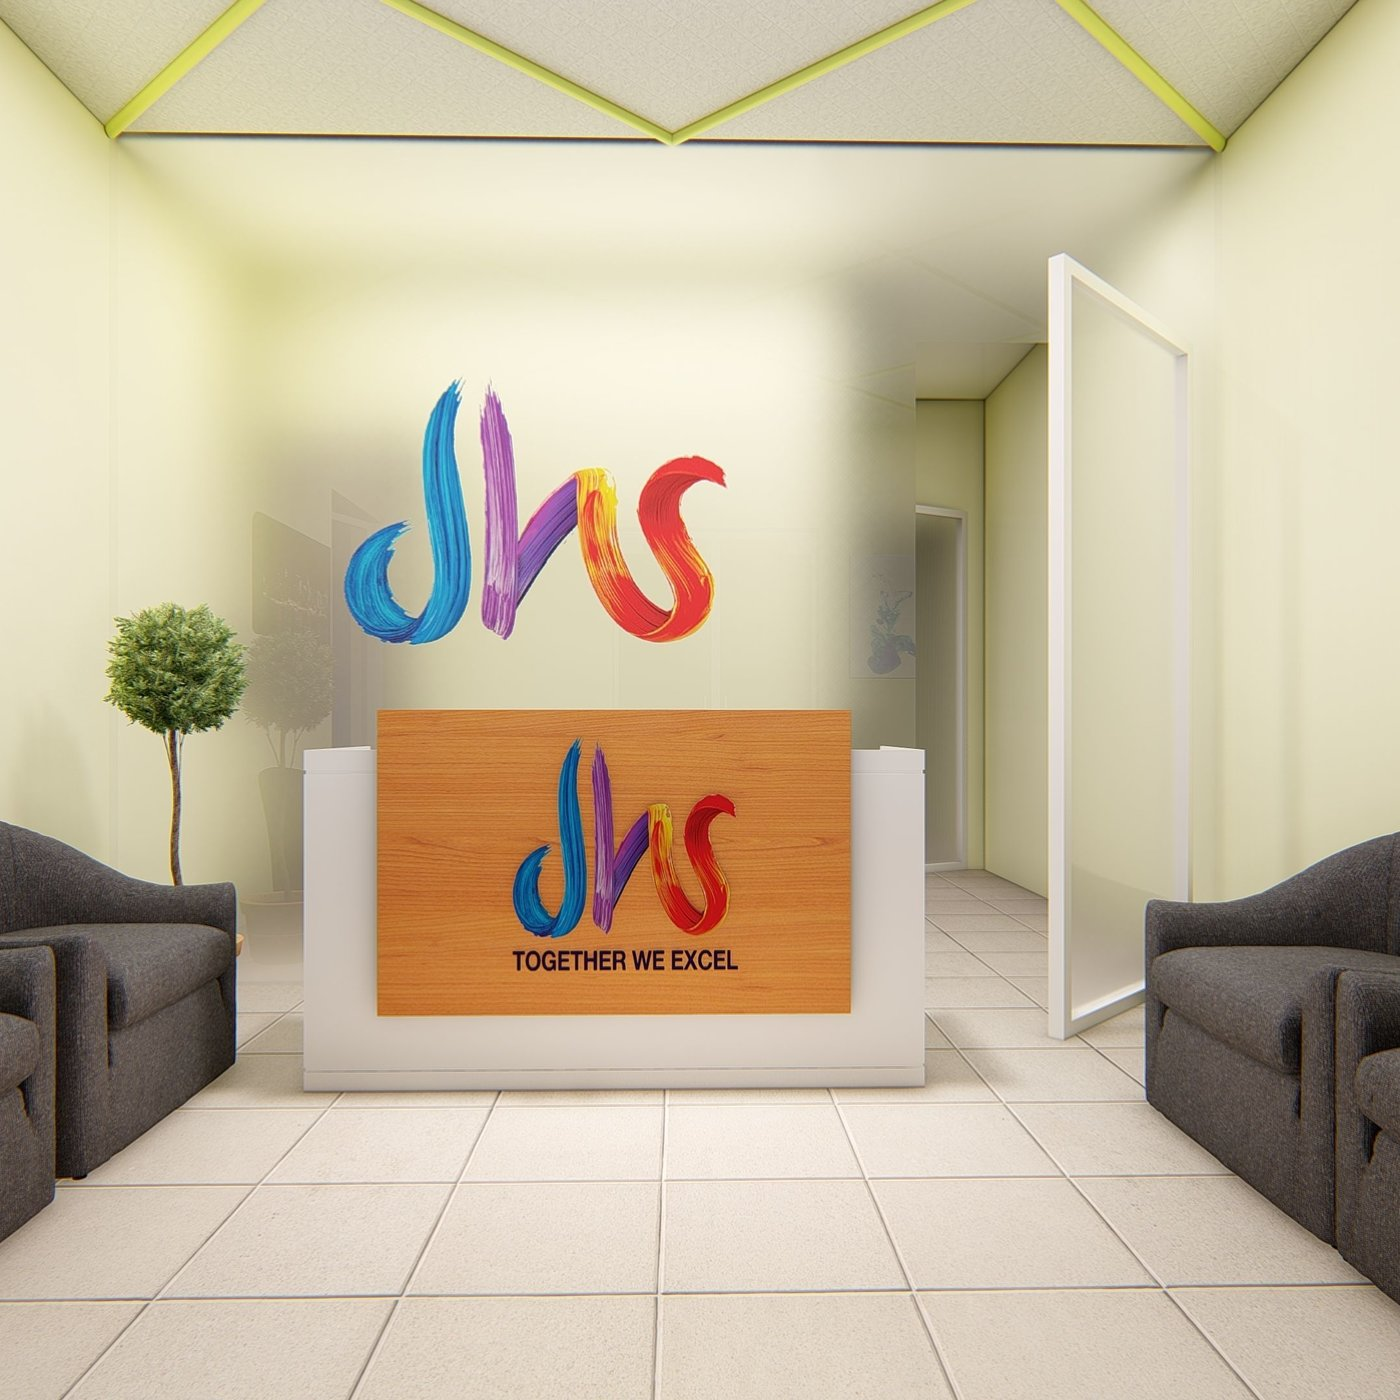 RECEPTION AREA DESIGN AND RENDER IN LUMION 8.5 PRO